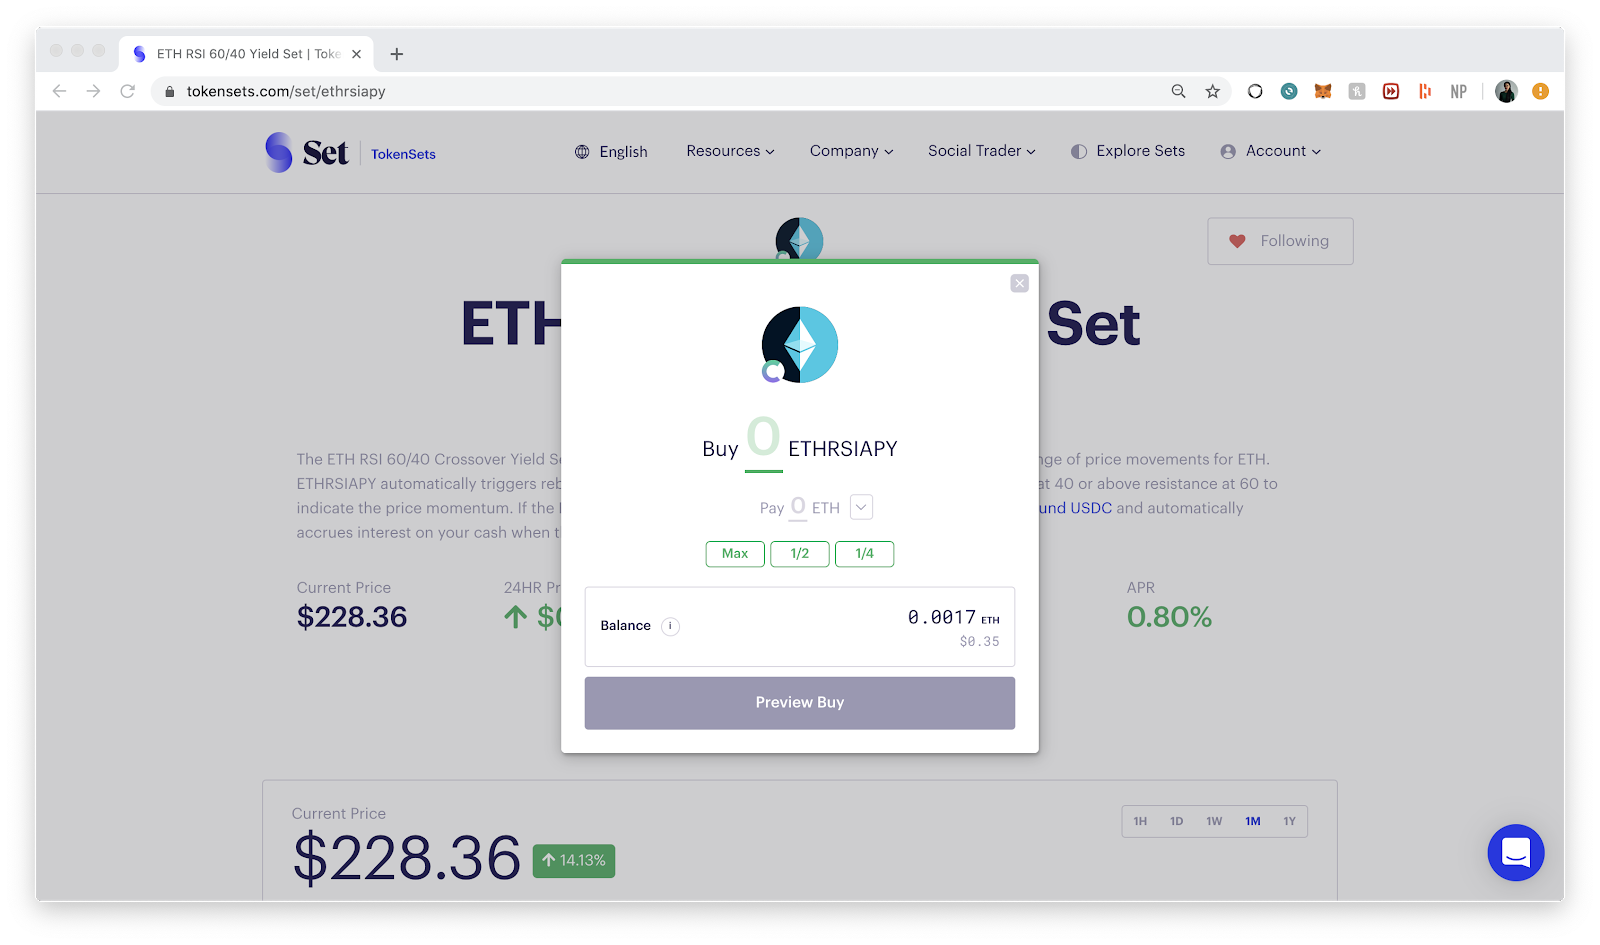 Buying on TokenSets